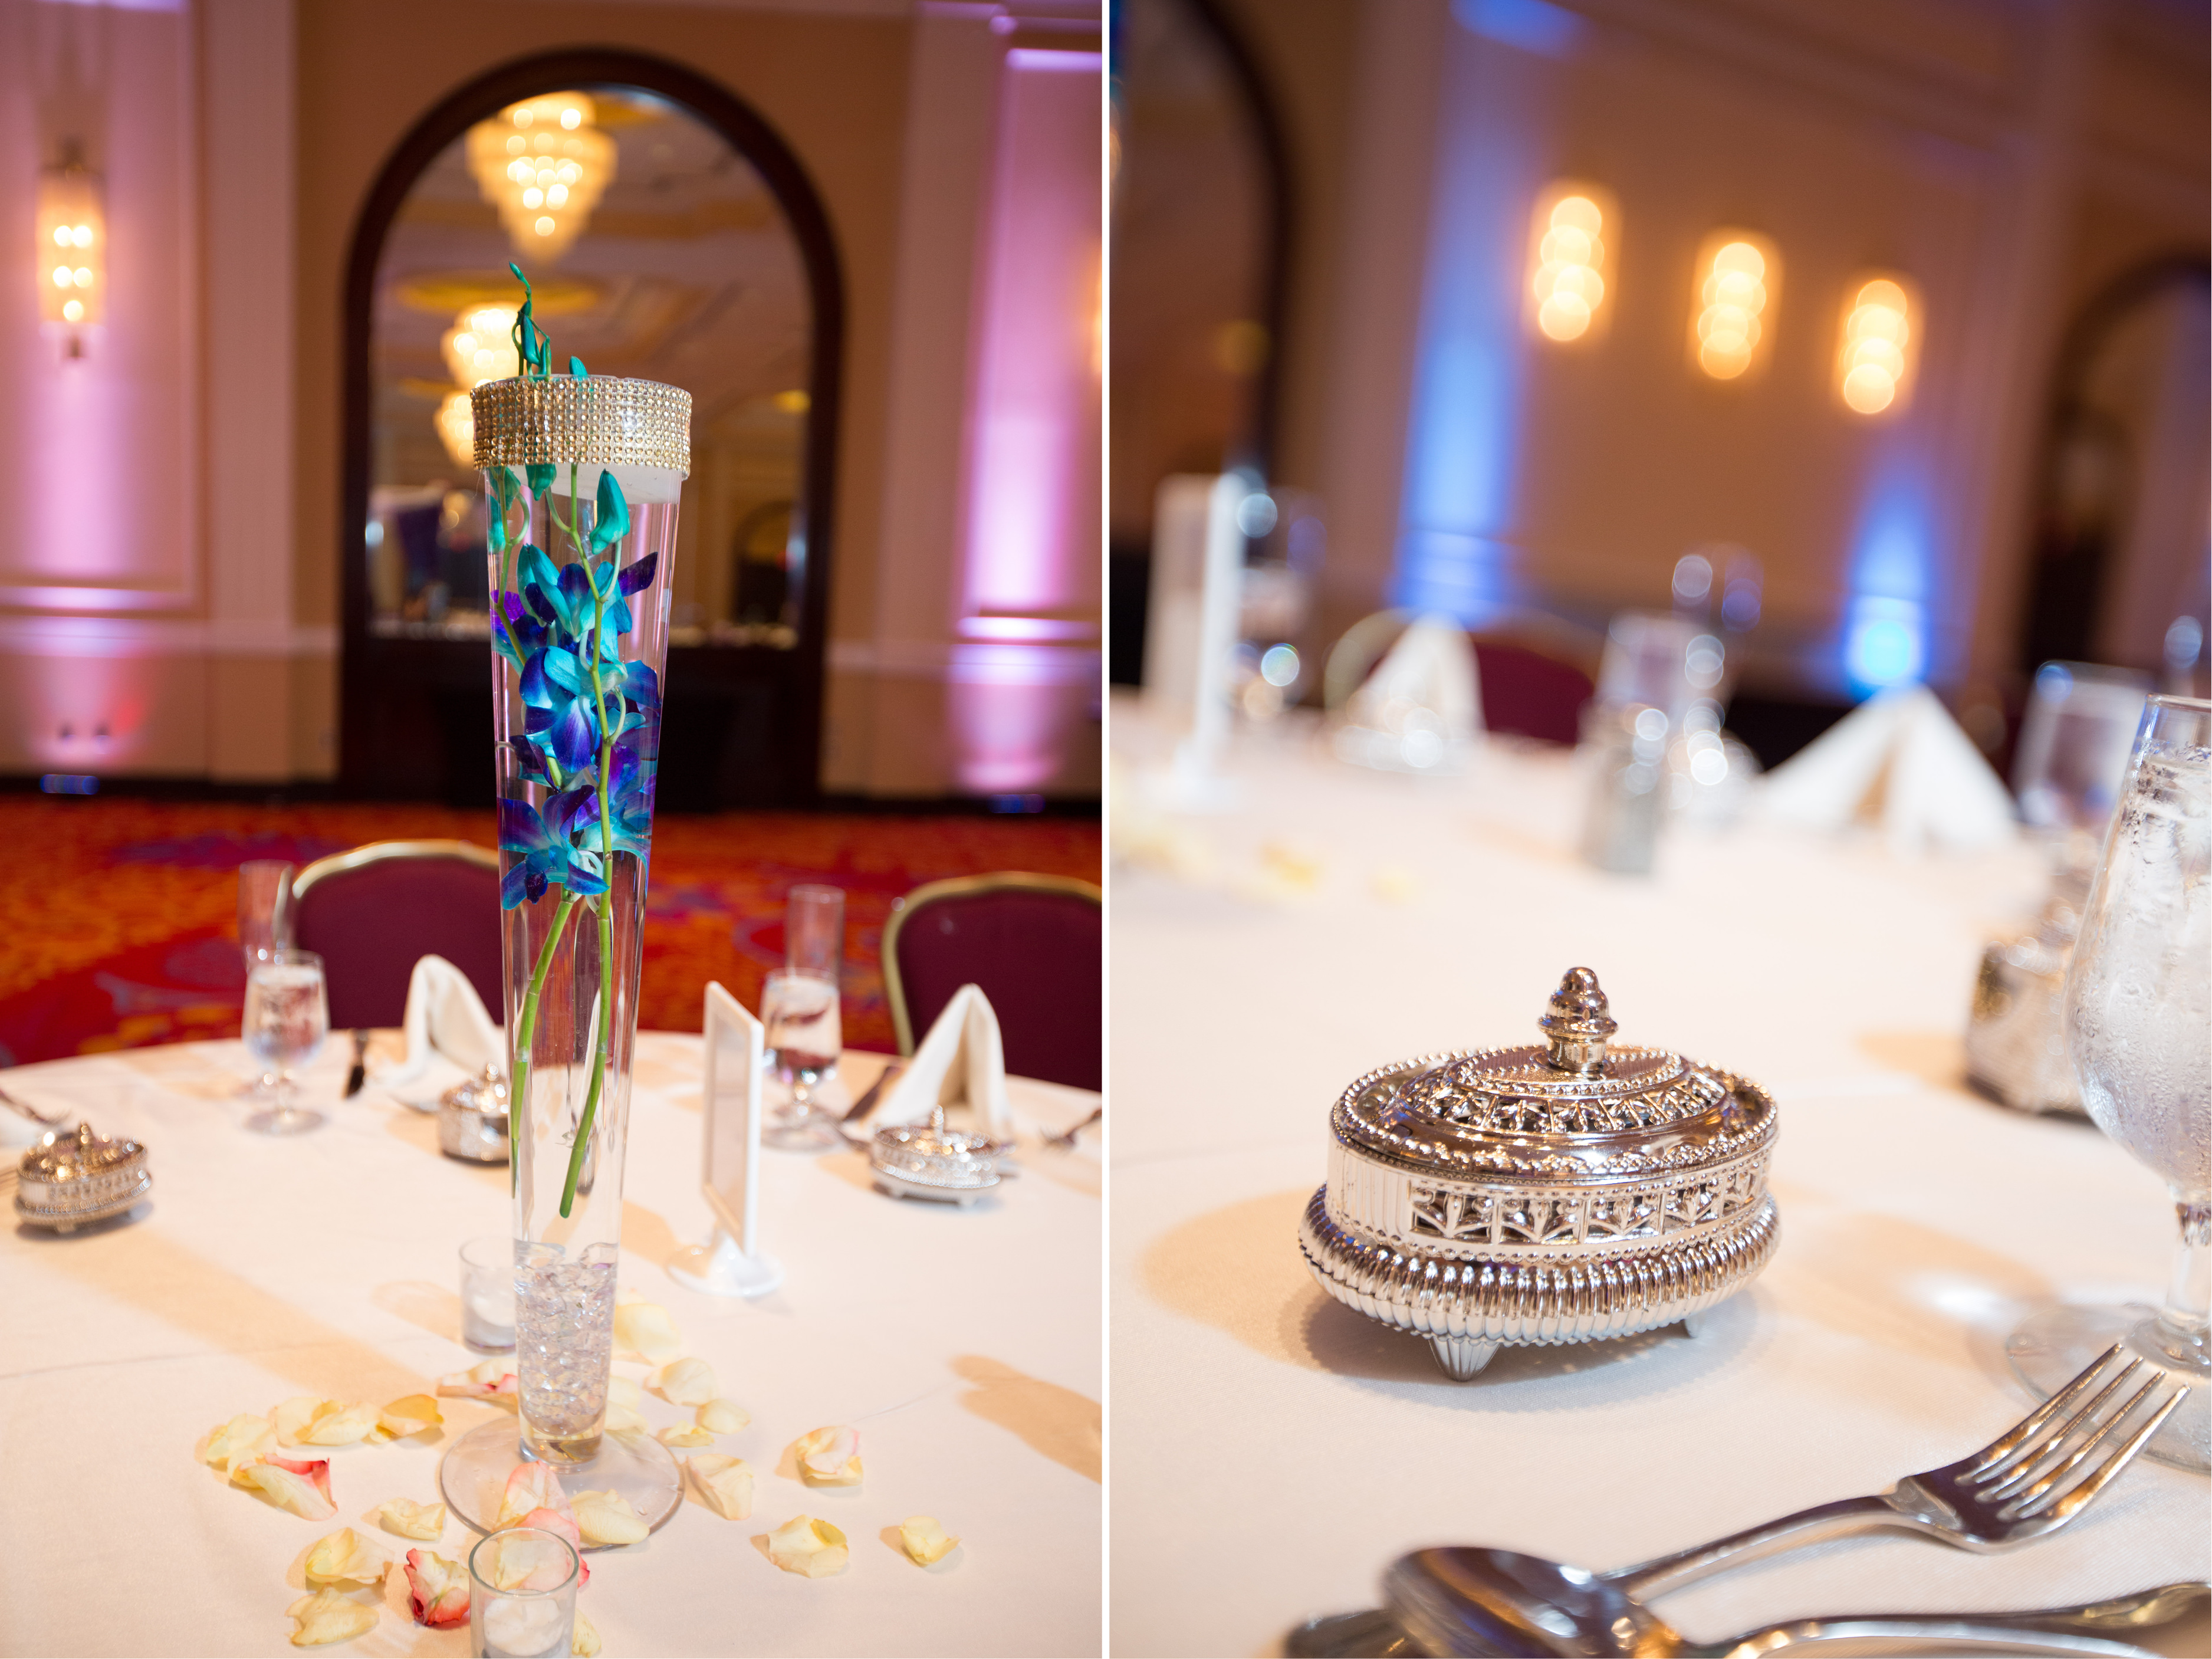 Emma_cleary_photography Indian Wedding24